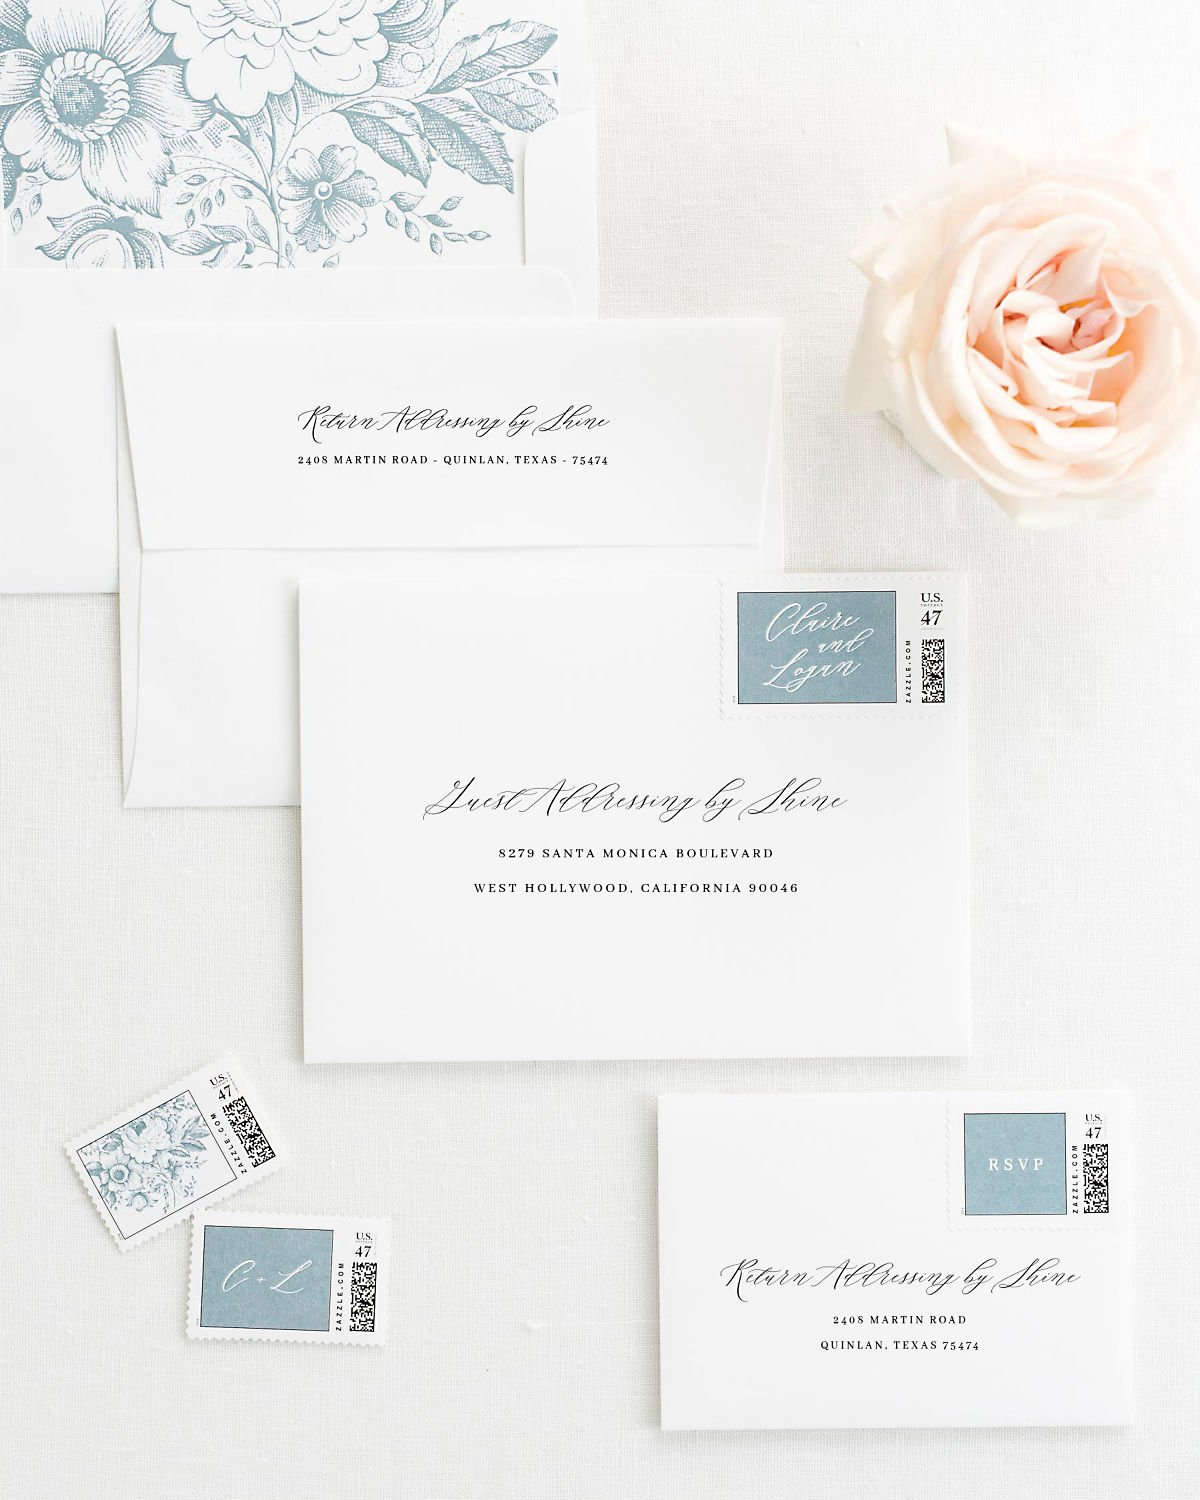 Wedding Invitation Envelopes with Pre-Printed Addresses and Matching Mineral Personalized Stamps